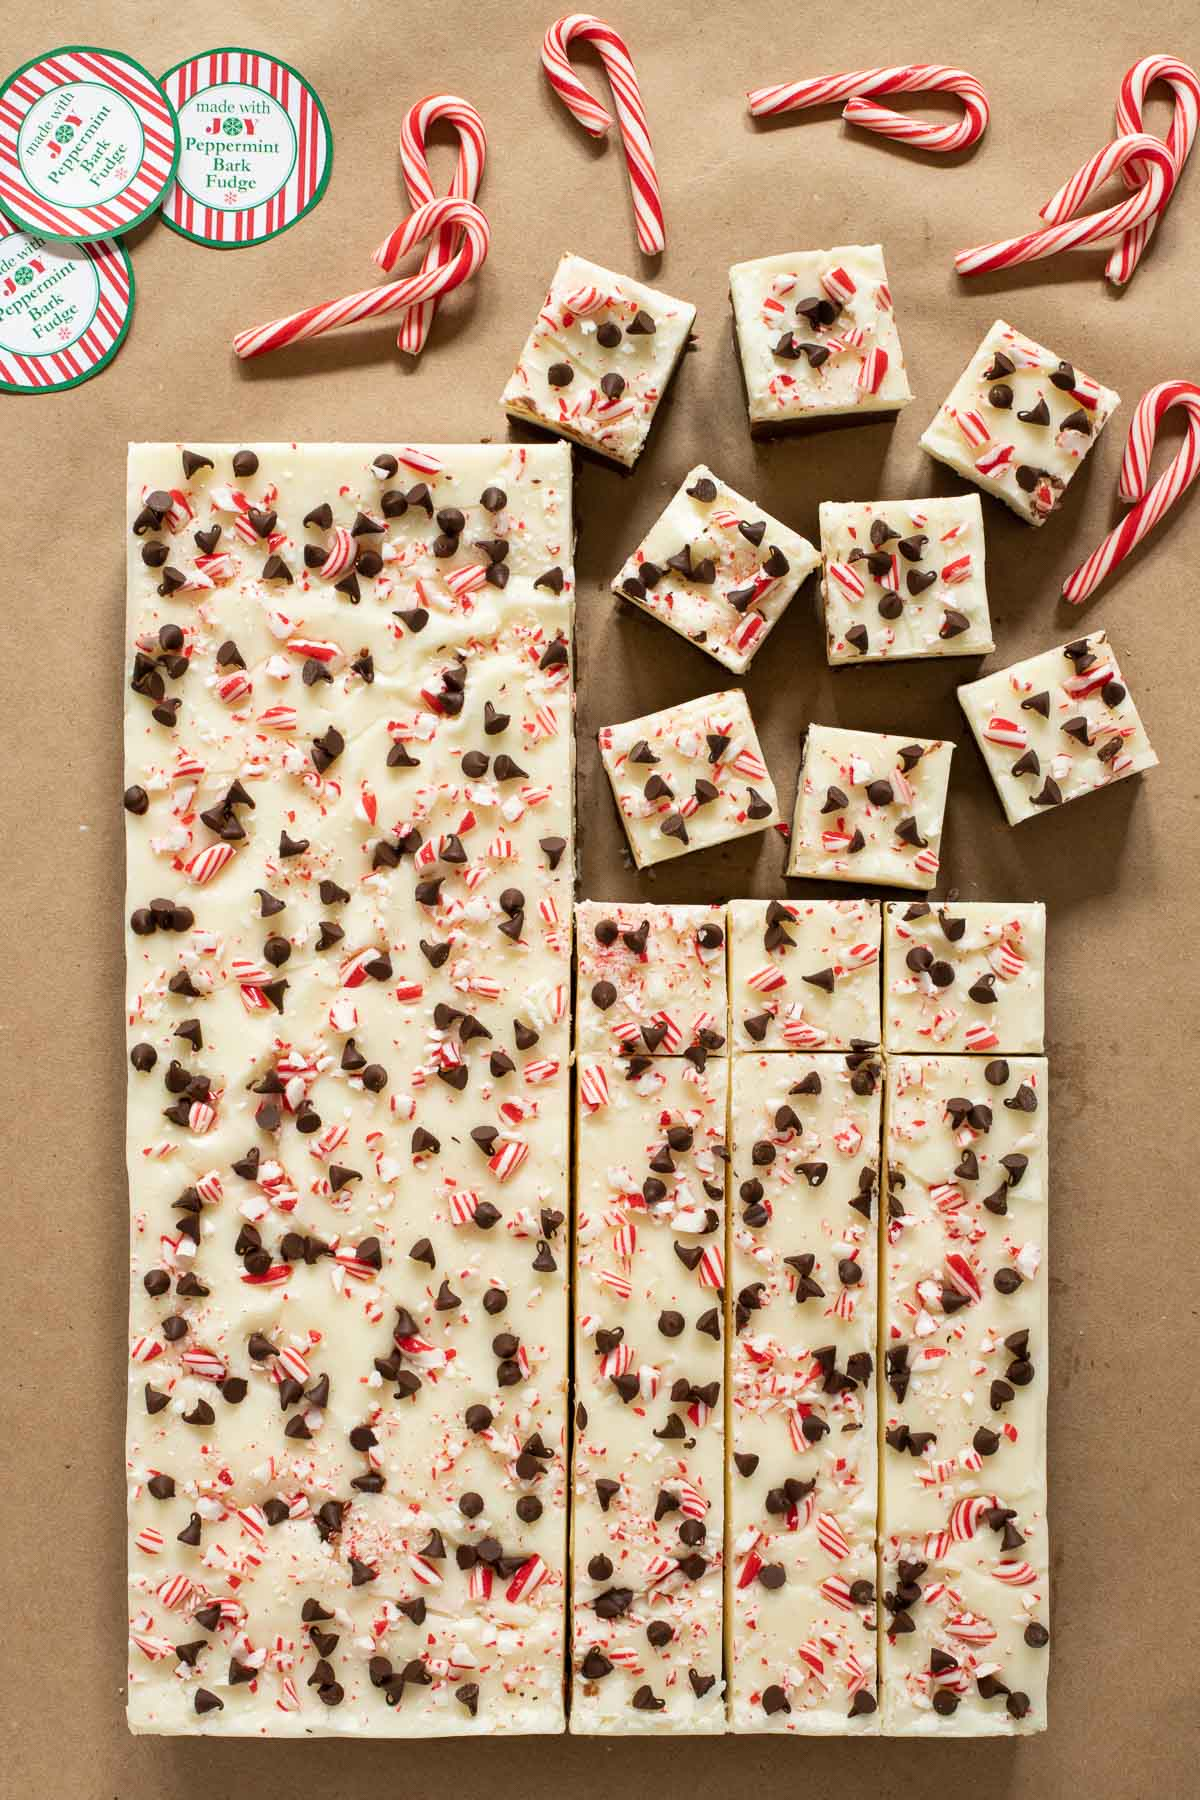 Overhead vertical photo of a slab of Peppermint Bark Fudge on parchment paper.